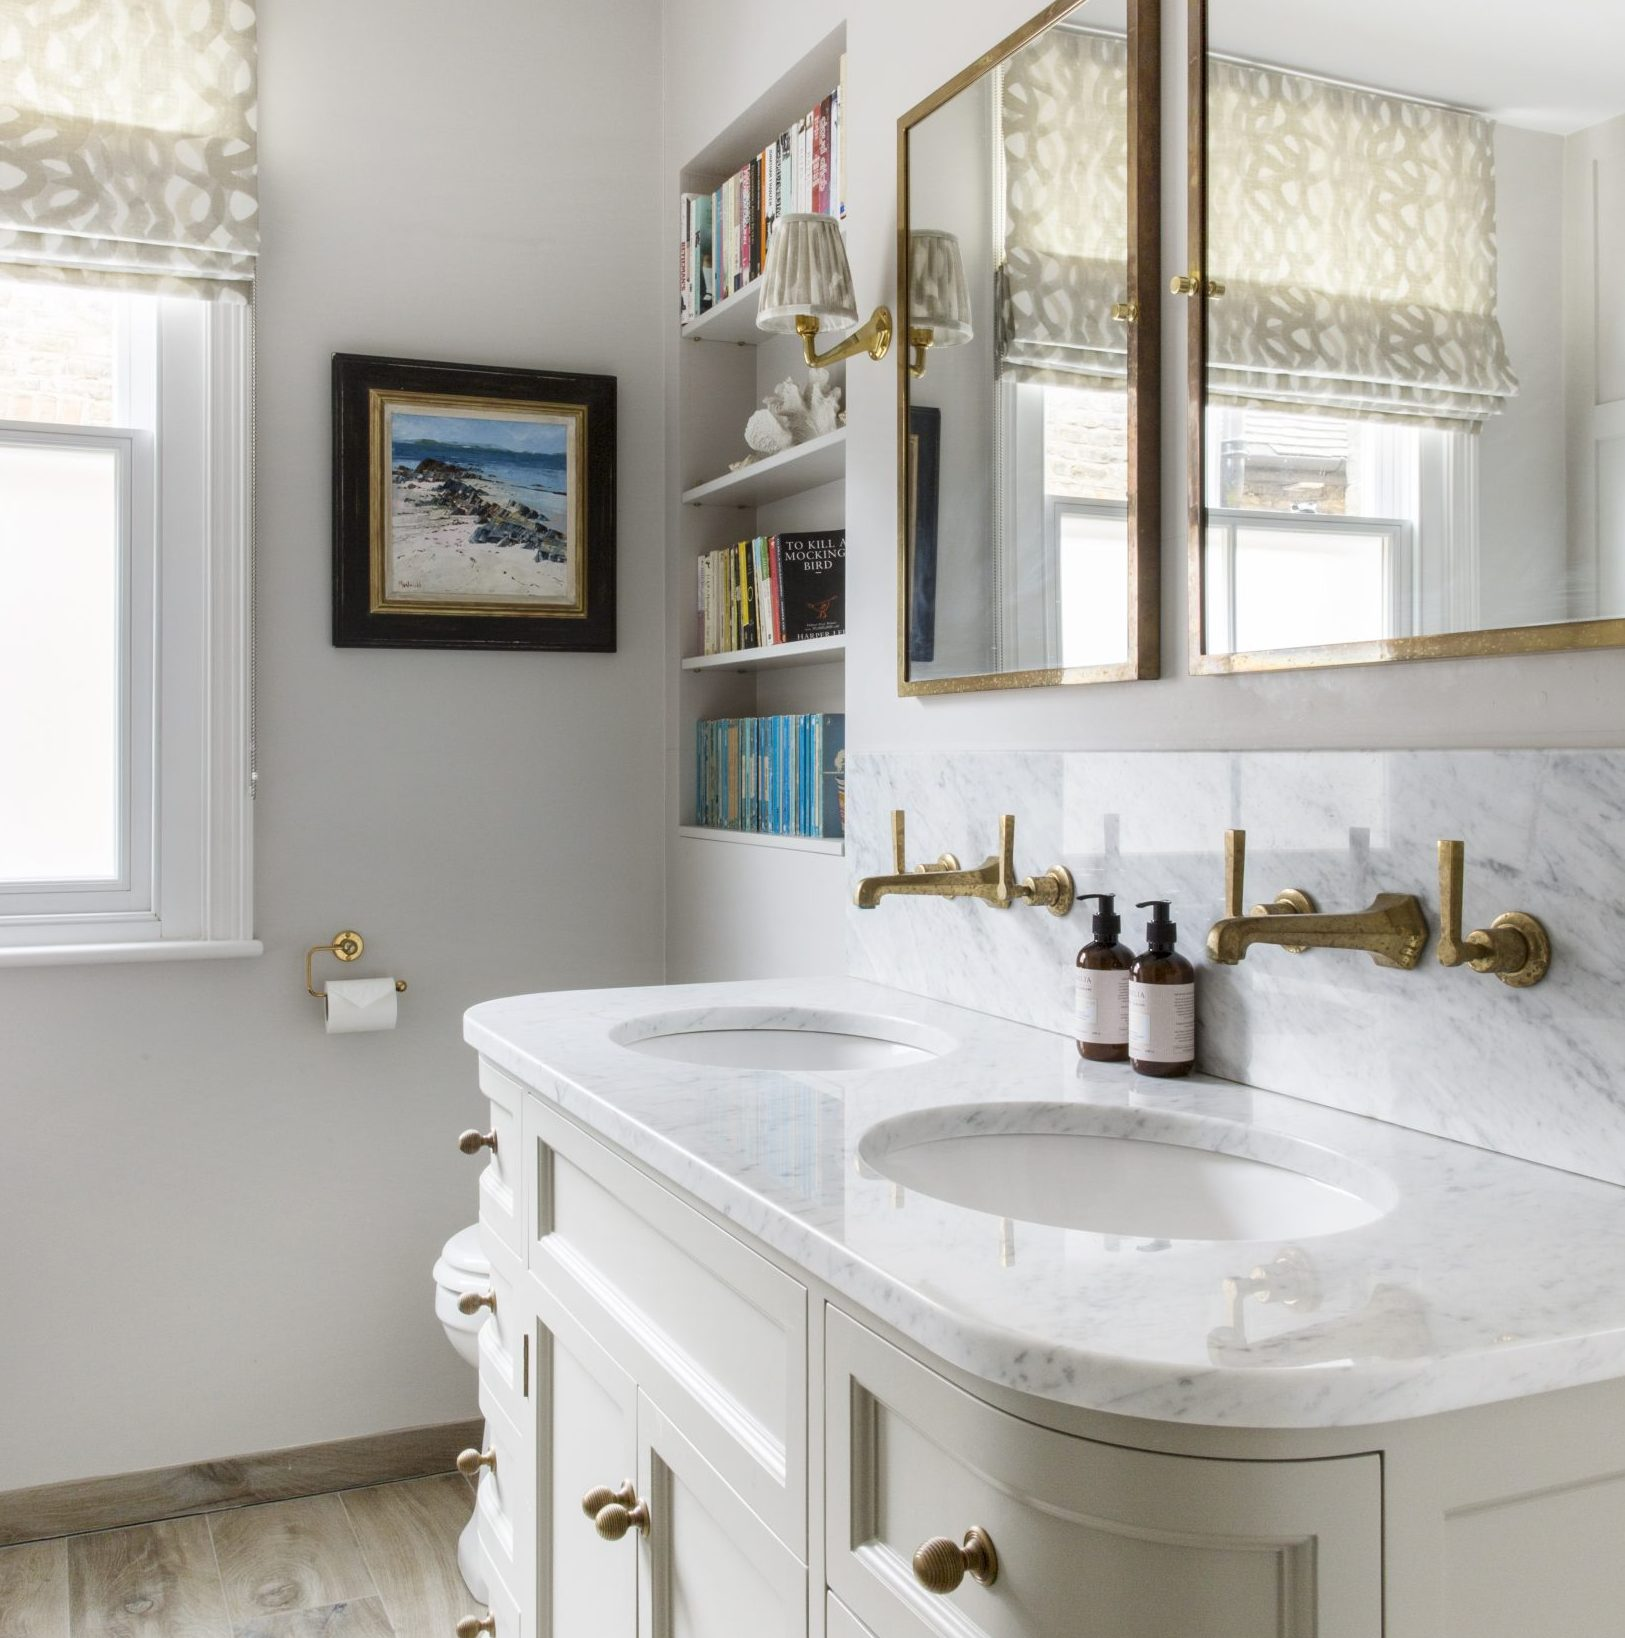 How to create a warm, decorative bathroom for a country house - Country Life